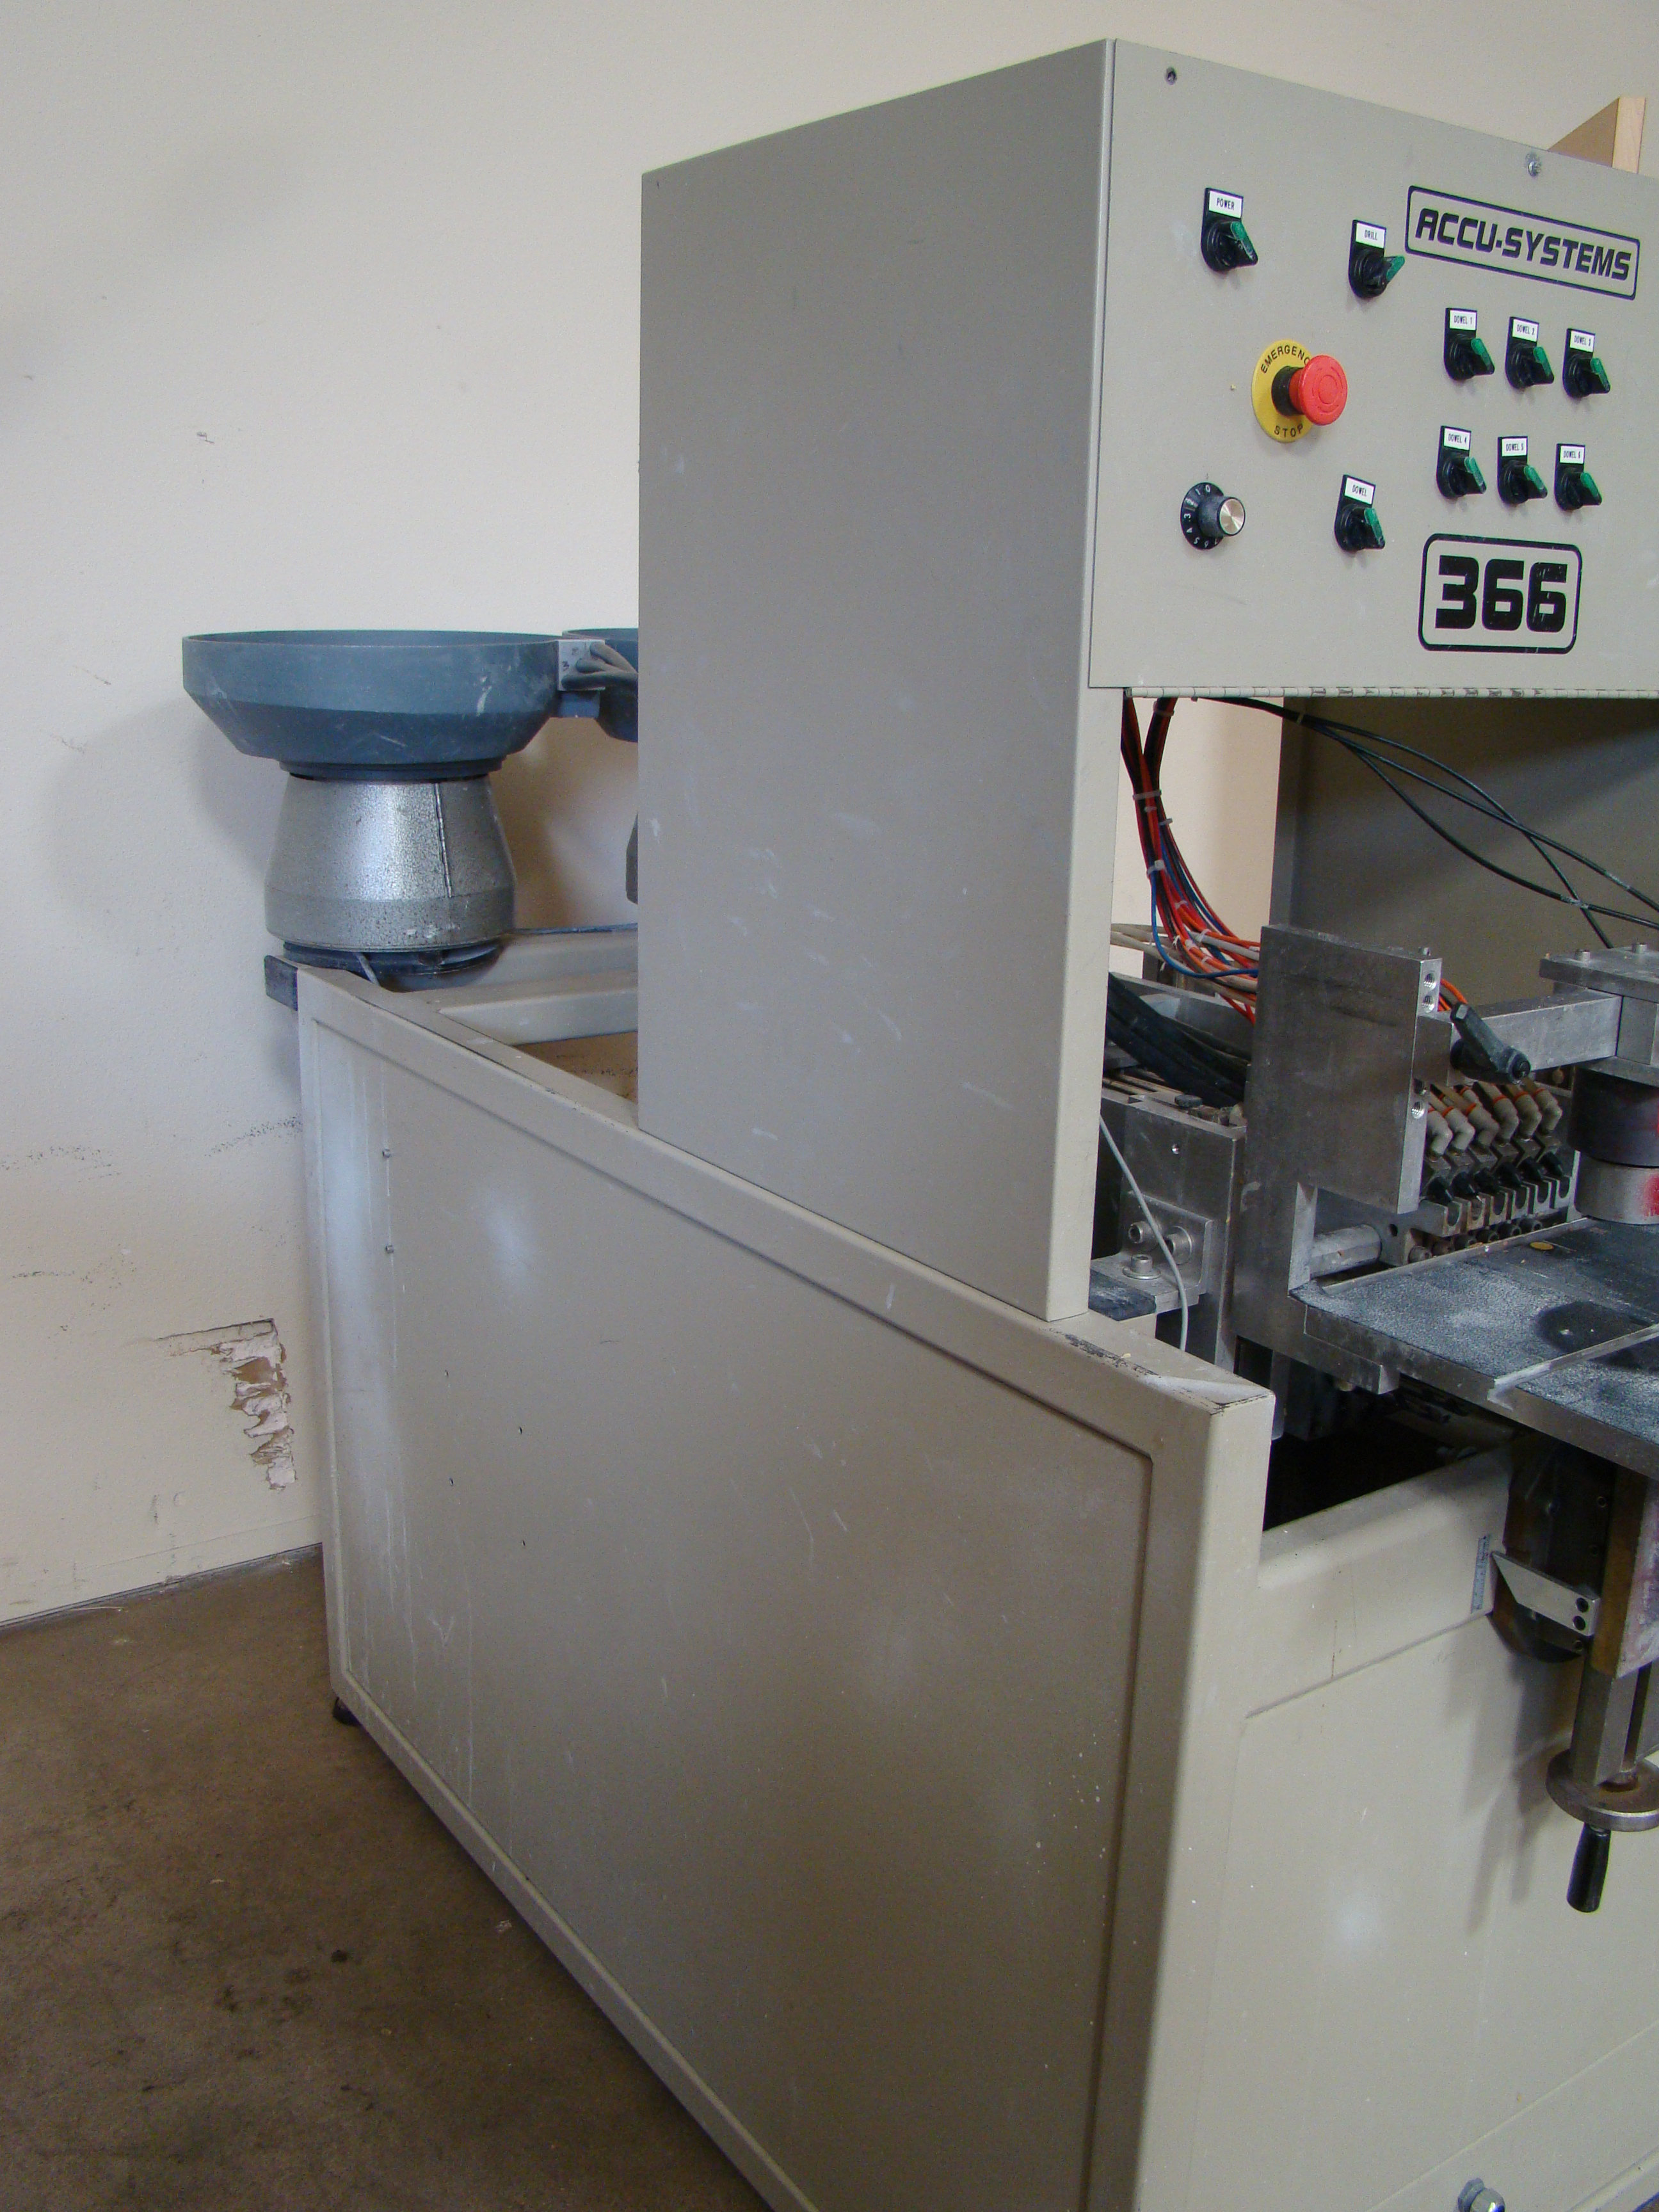 ACCU-Systems 366 Dowel Insertion Machine with Foot Pedal, Vibratory Bowl Feeders, Glue Pot 220 - Image 3 of 8